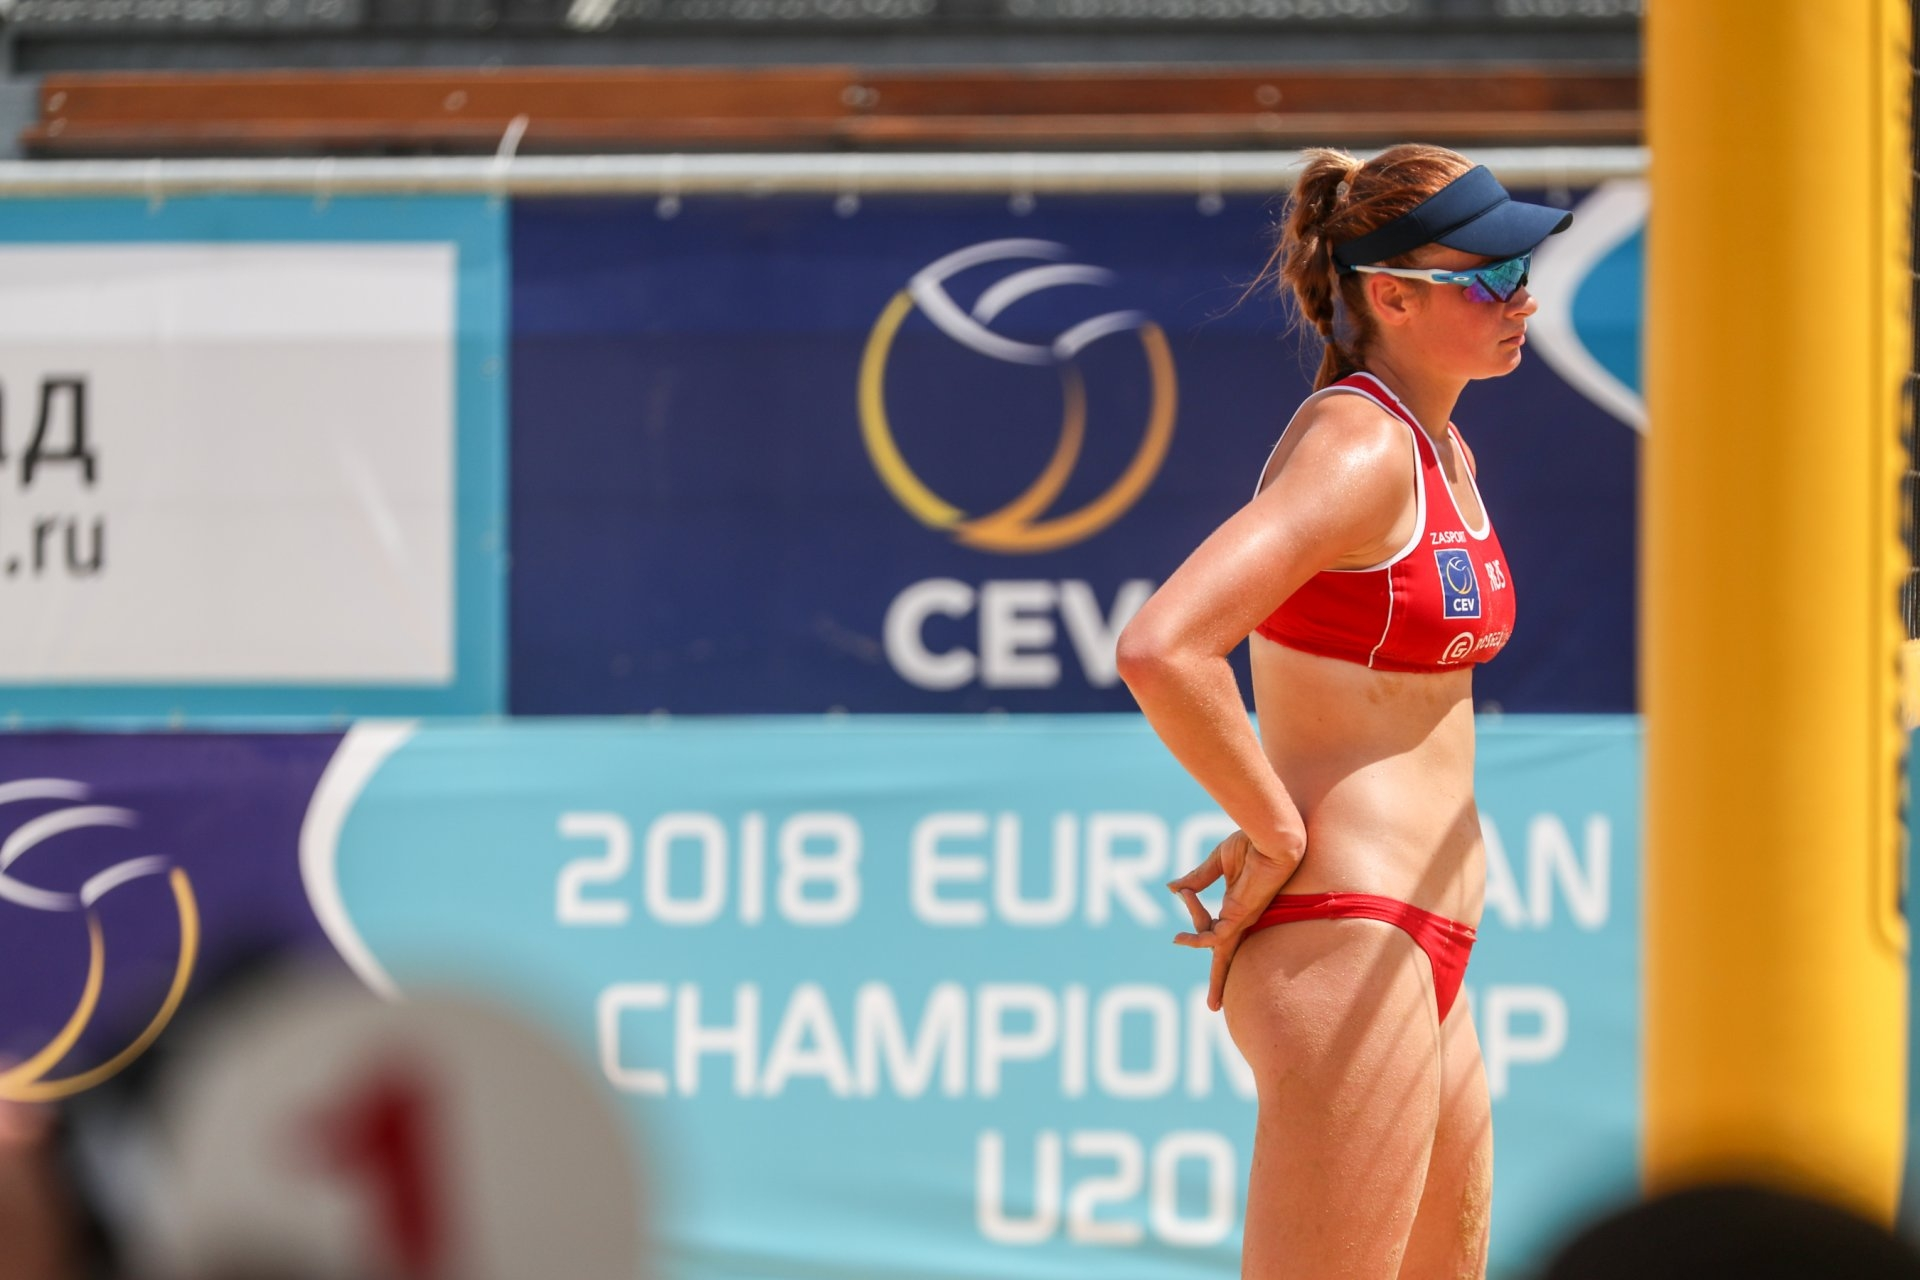 16-year-old Bocharova will try to become a World Tour regular in the upcoming season (Photocredit: FIVB)